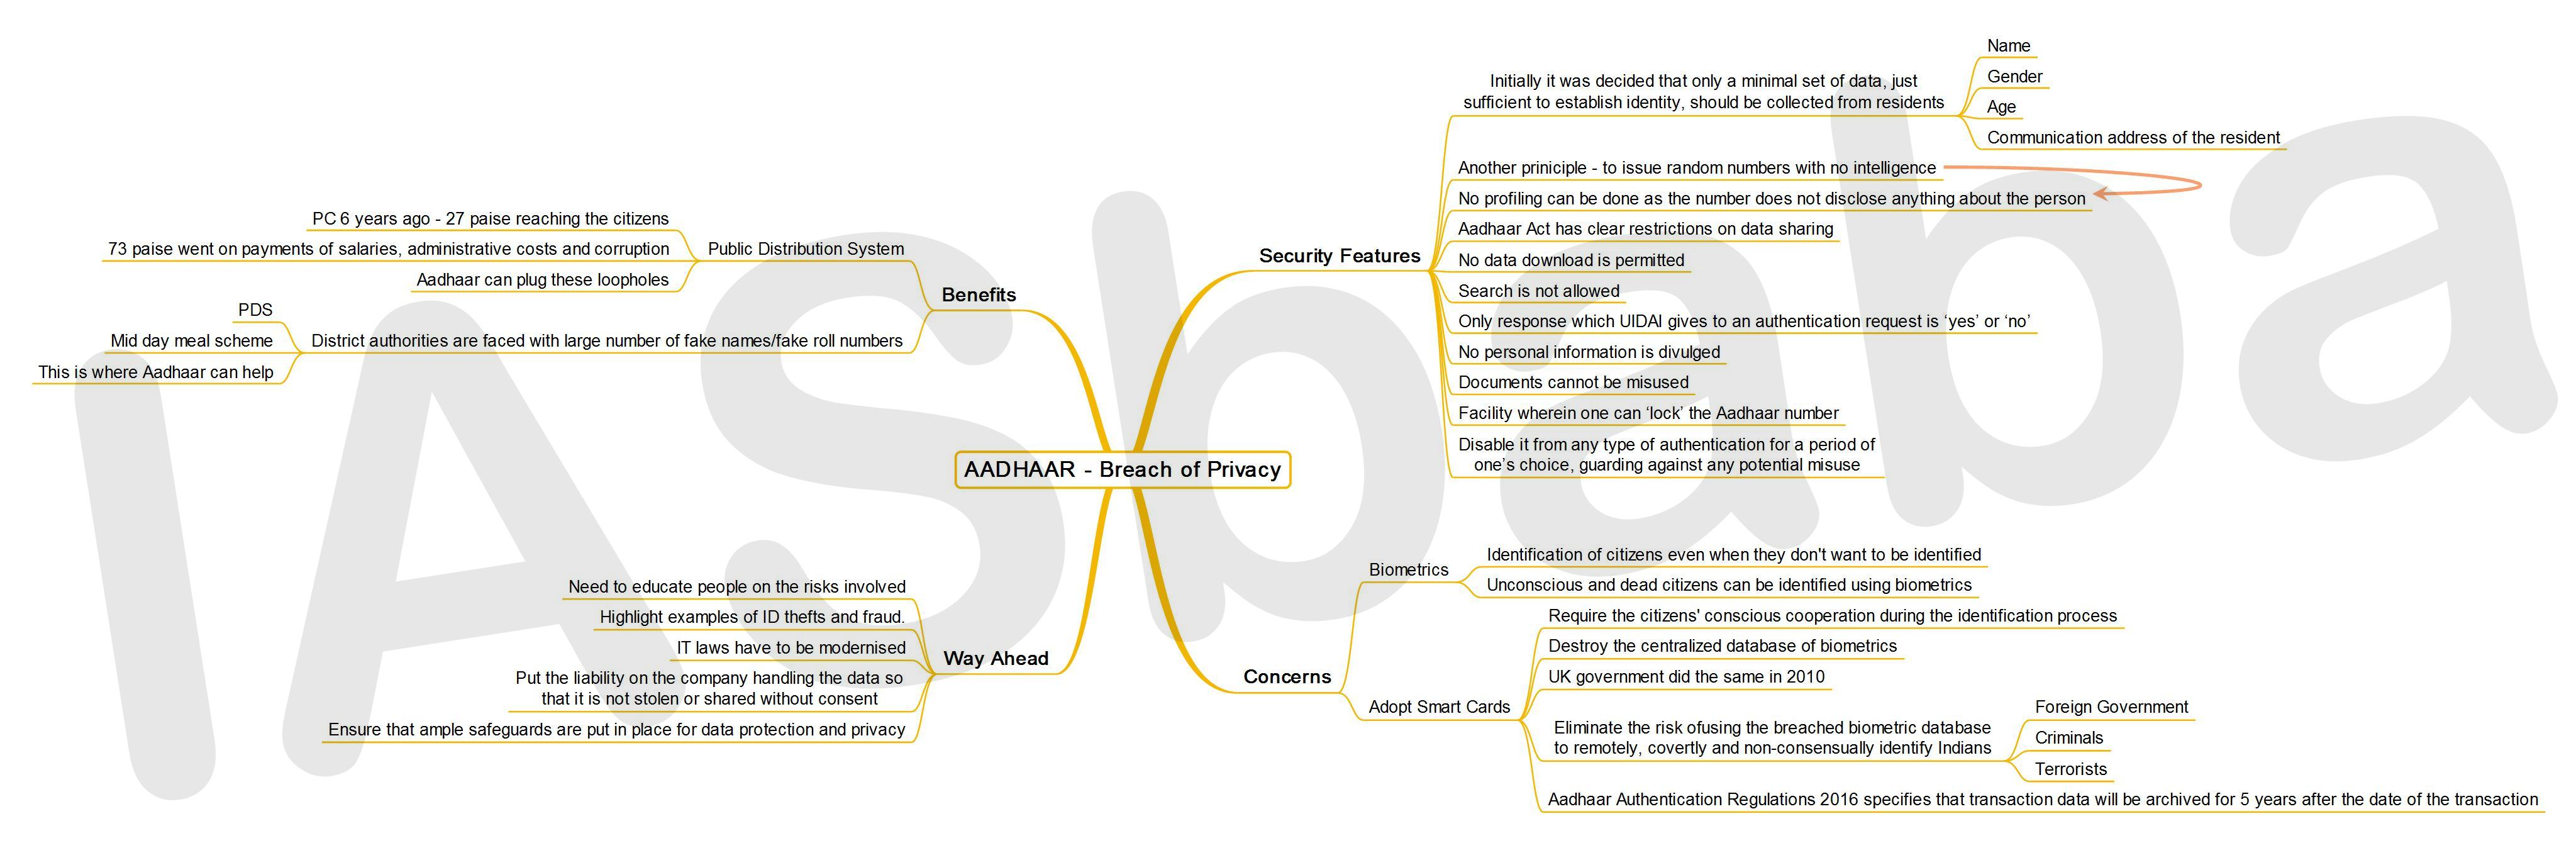 IASbaba's MINDMAP : Issue - Aadhar - Breach of Privacy